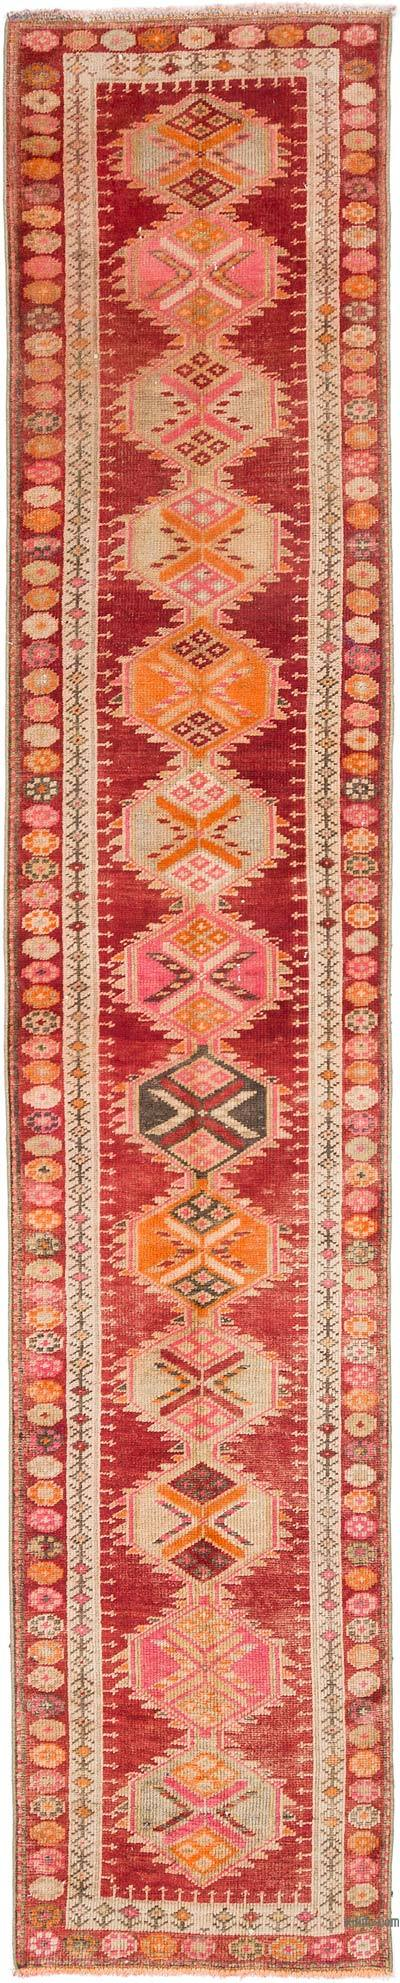 "Vintage Turkish Runner Rug - 2' 7"" x 13'  (31 in. x 156 in.)"